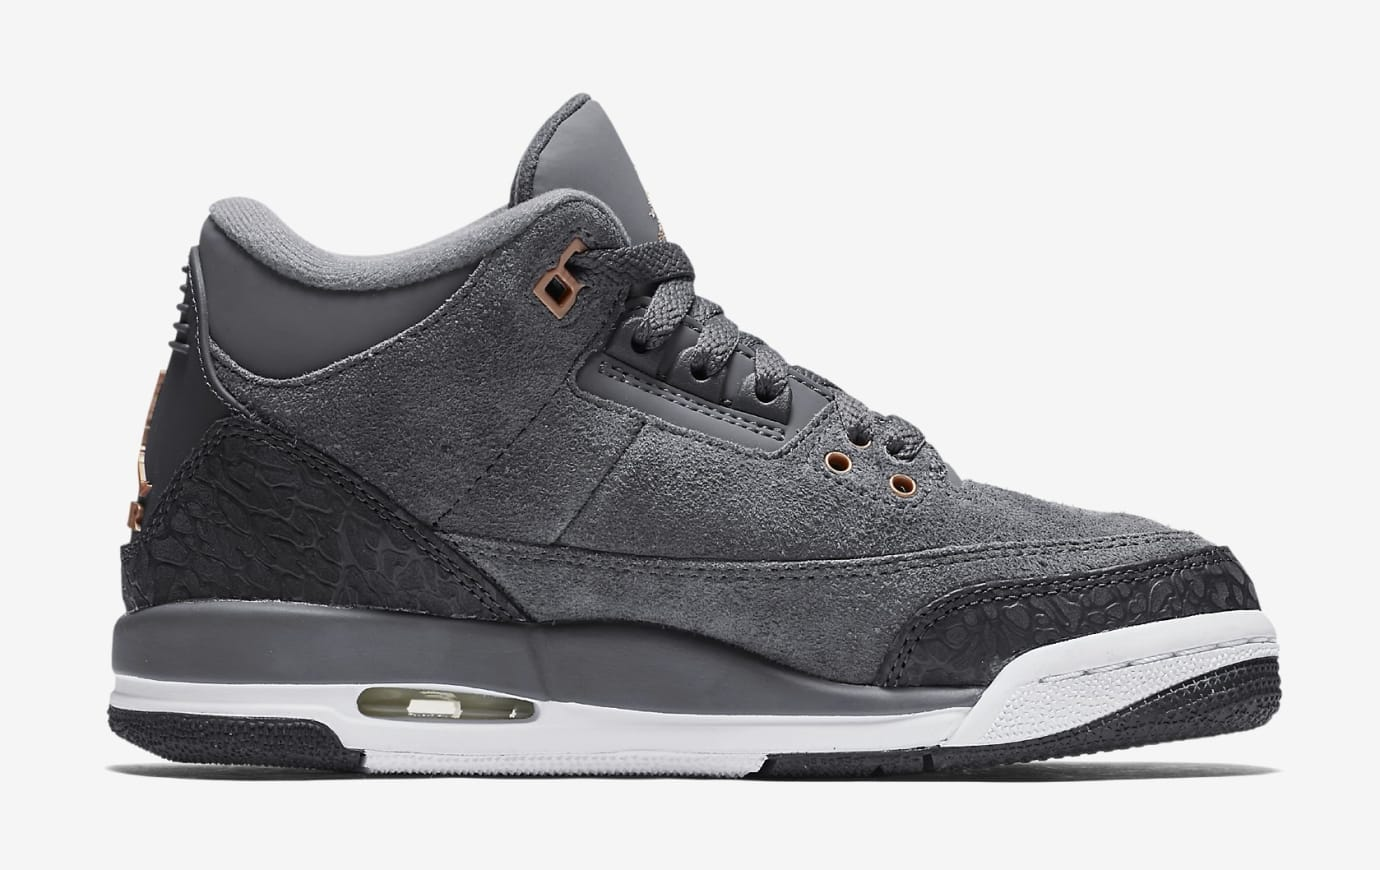 'Anthracite' Air Jordan 3 GG 441140-035 (Lateral)